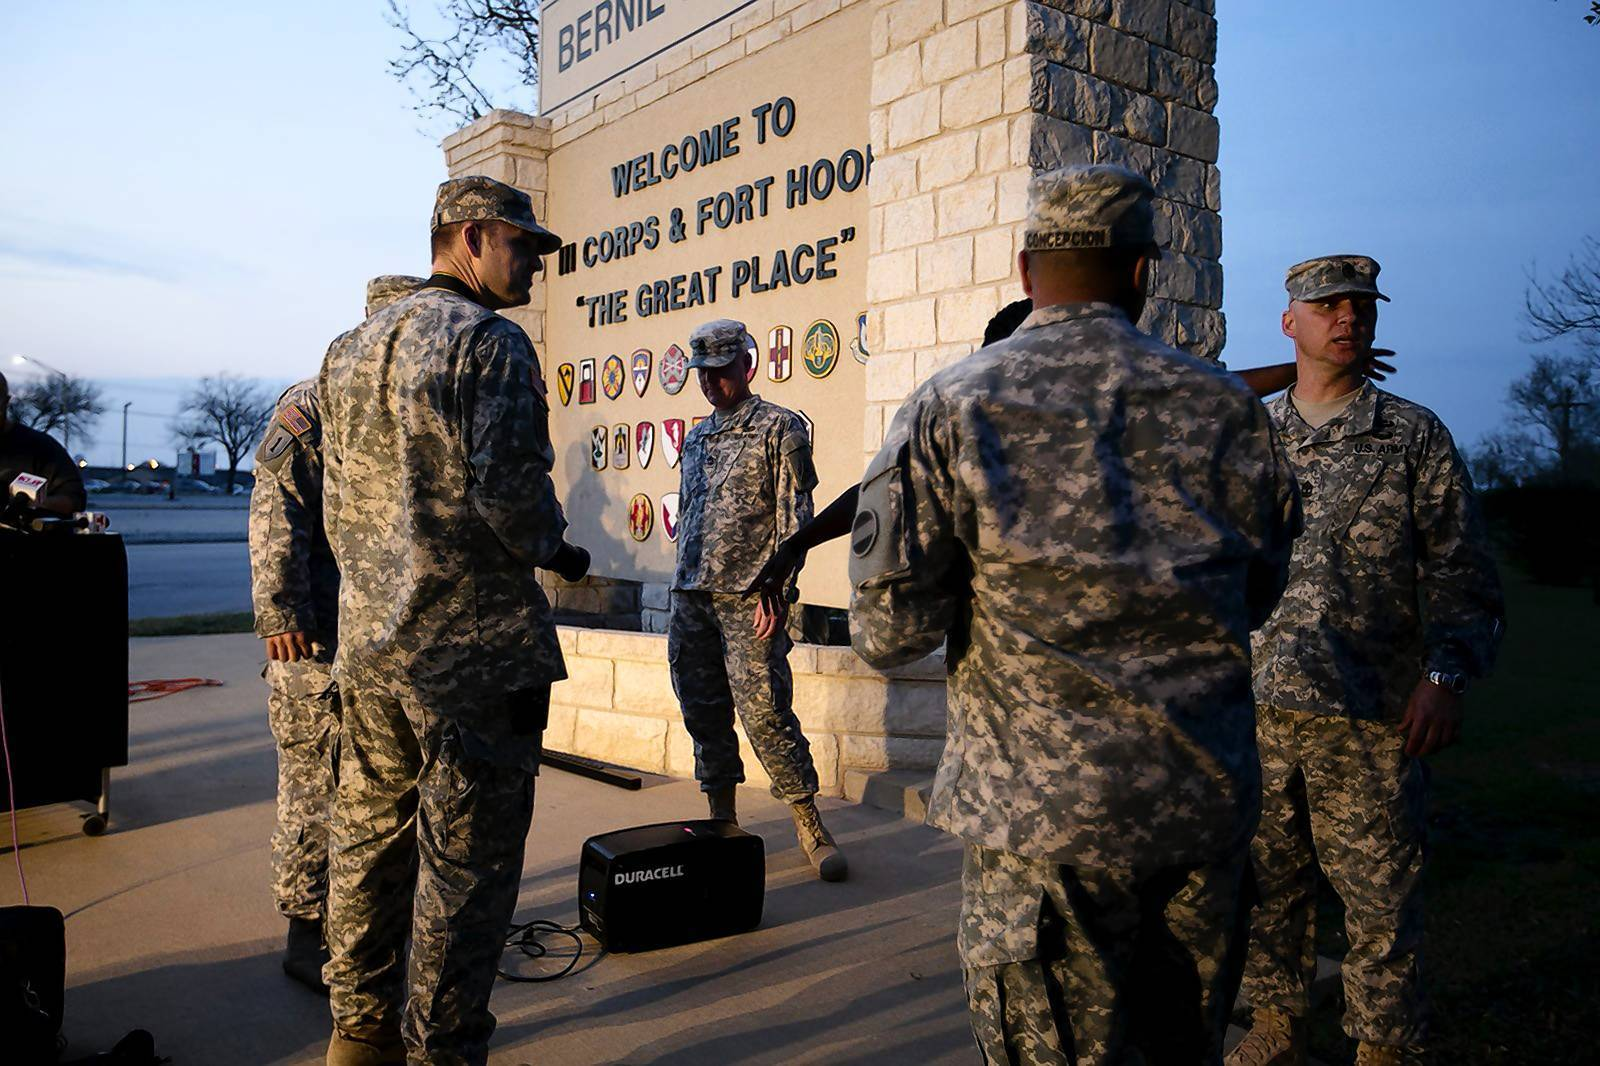 Military personnel wait for a news conference to begin at Fort Hood, Texas.